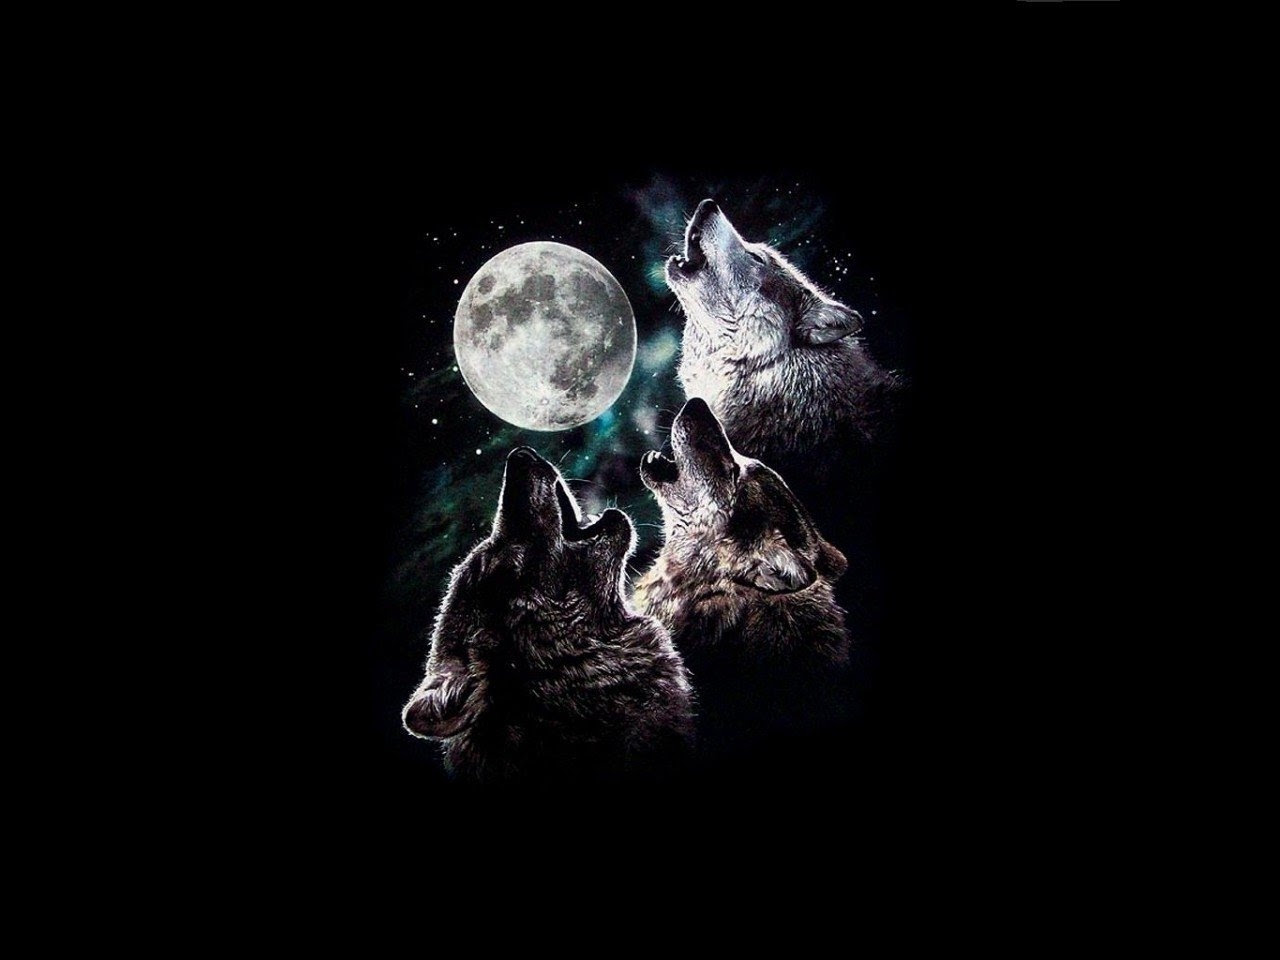 Wallpaper Koral Hd Wallpaper Wolf Moon Hd